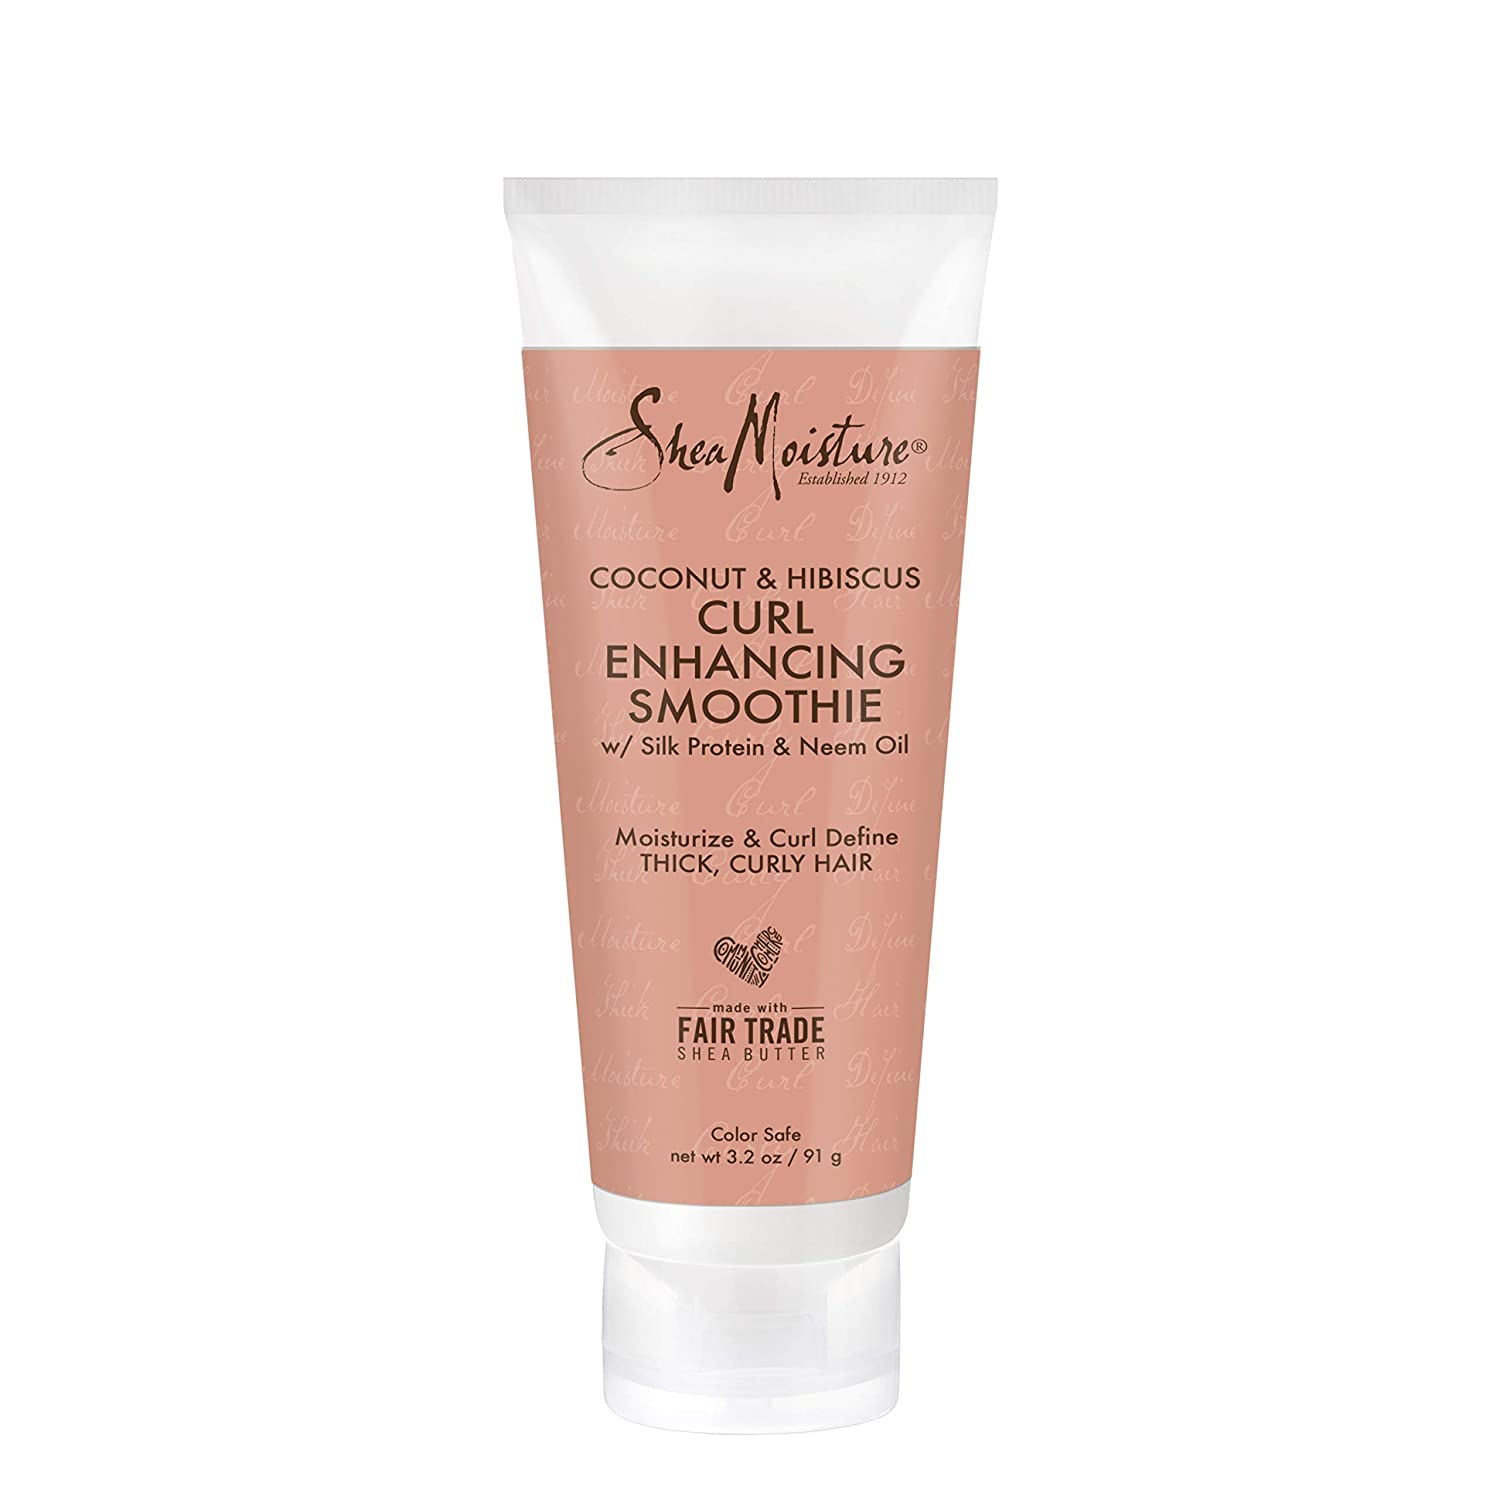 SheaMoisture Coconut & Hibiscus Curl Enhancing for Thick, Curly Hair Smoothie to Reduce Frizz 3.2 oz (I0080326) : Beauty